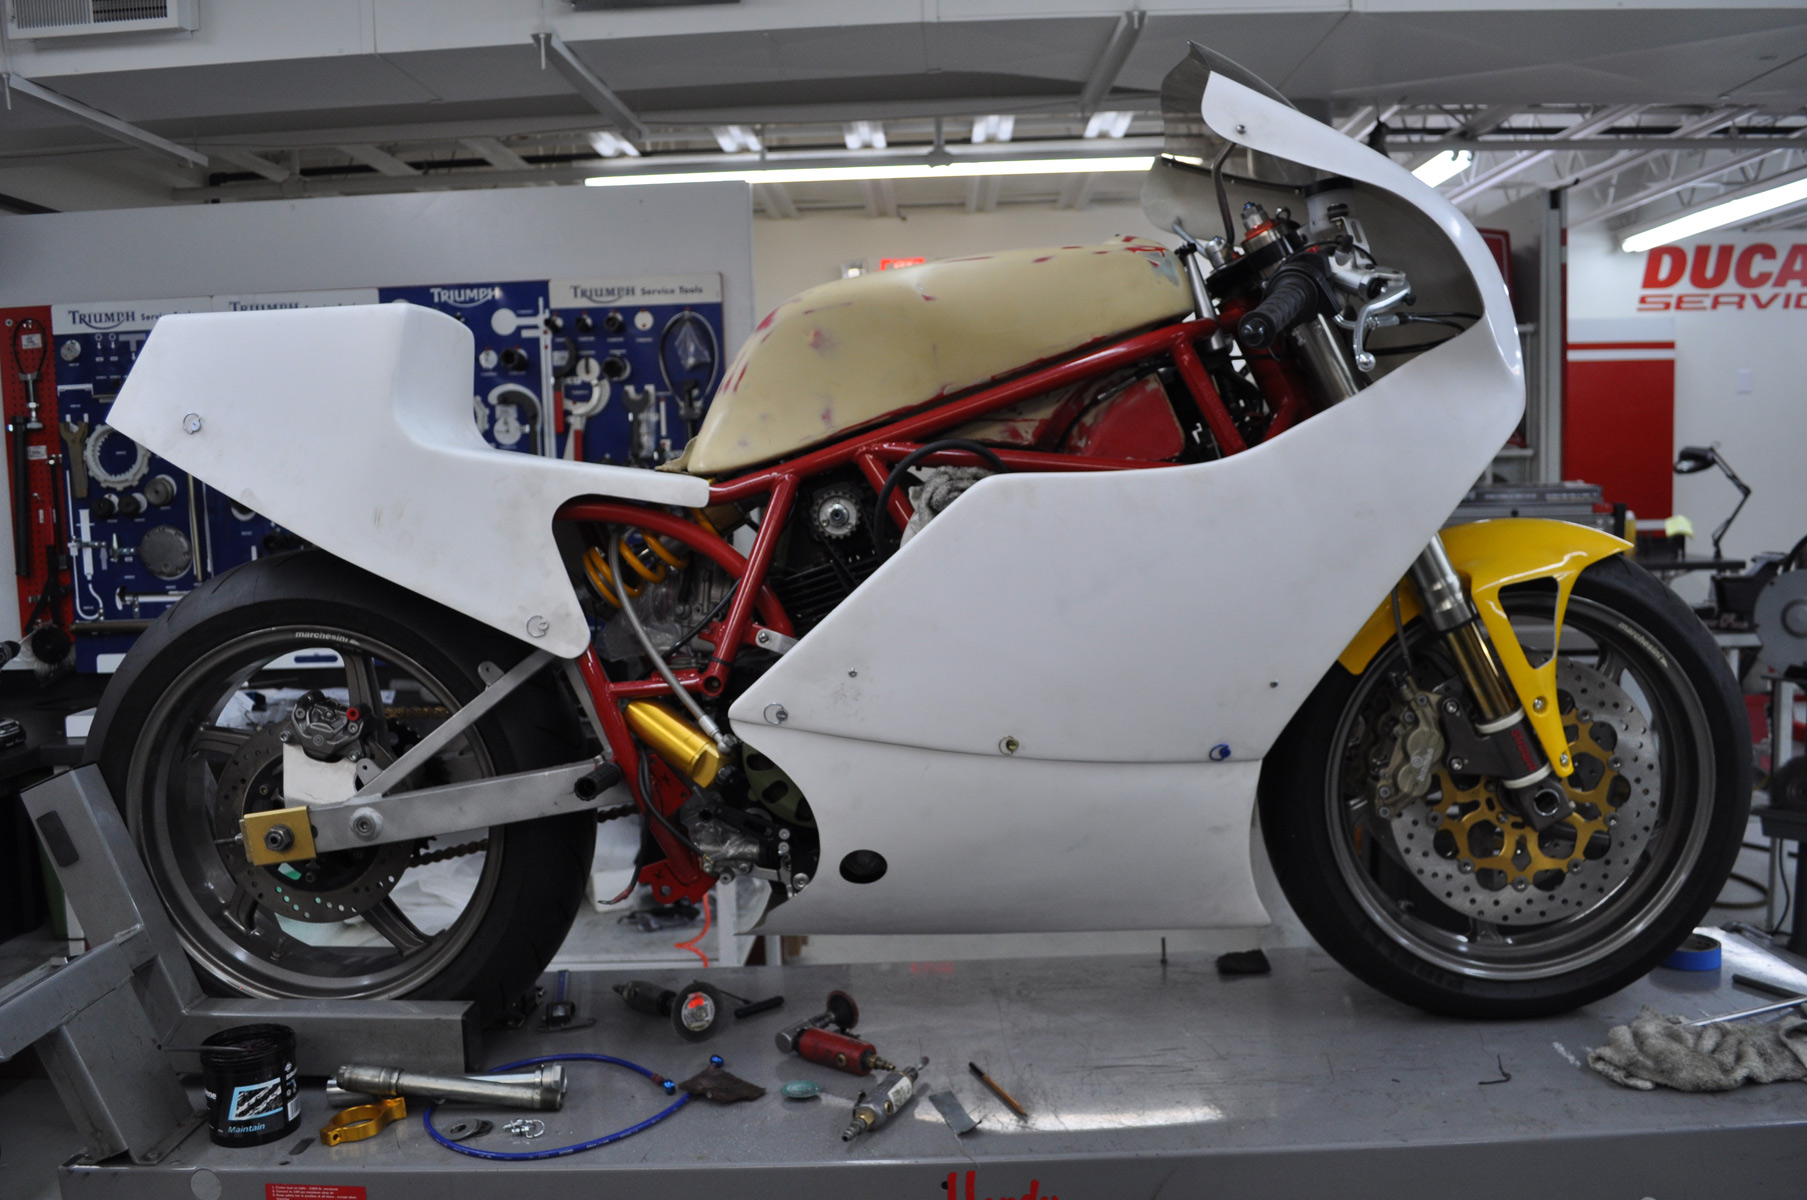 Commonwealth Motorcycle 1985 Ducati F1 Project Welcome